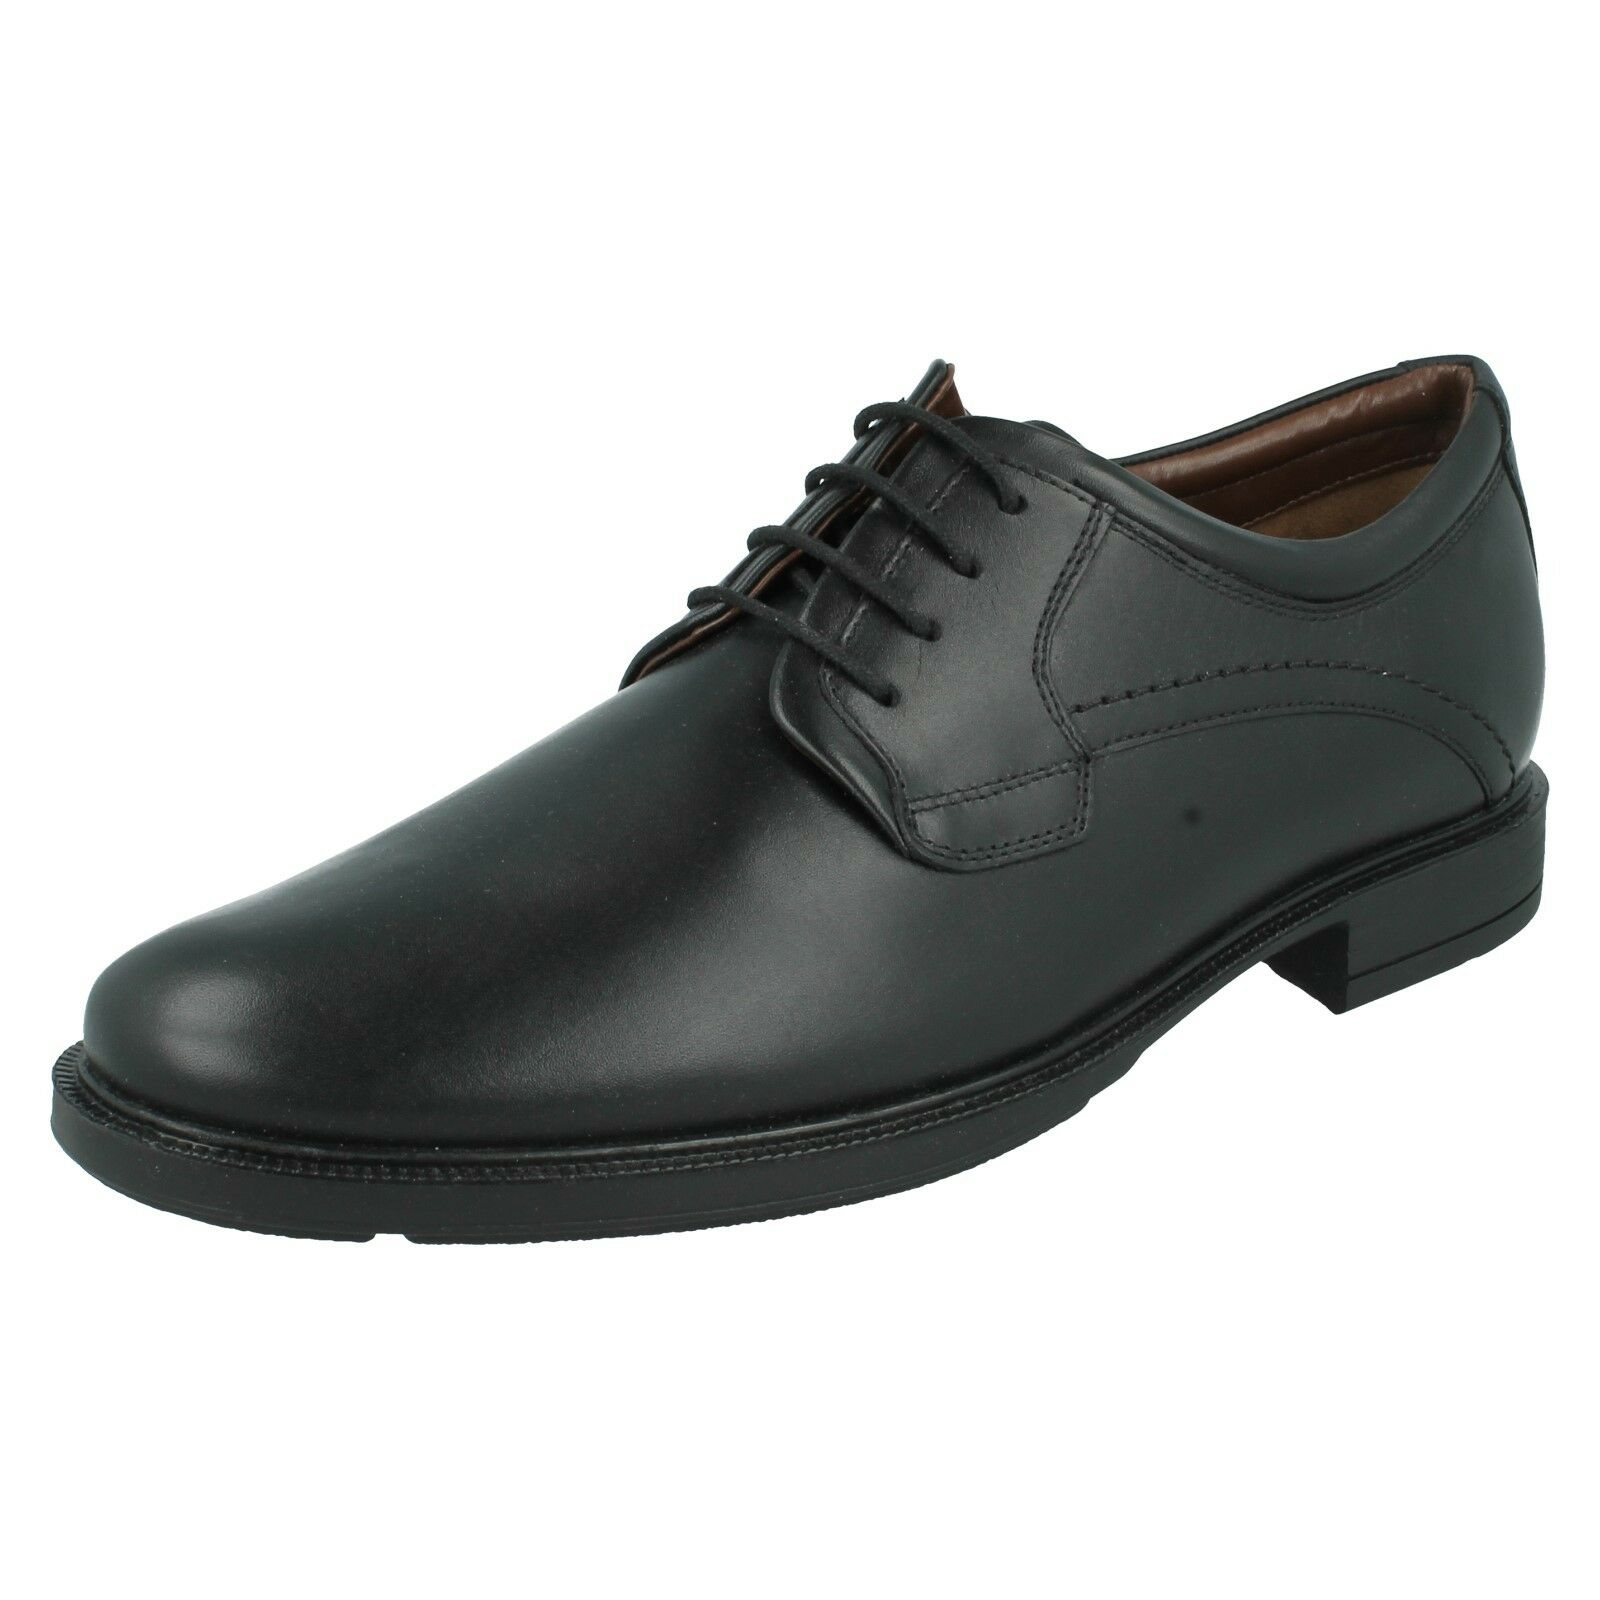 MENS HUSH PUPPIES BLACK LEATHER LACE UP WIDE FIT FORMAL WORK SHOES MICHIGAN 3